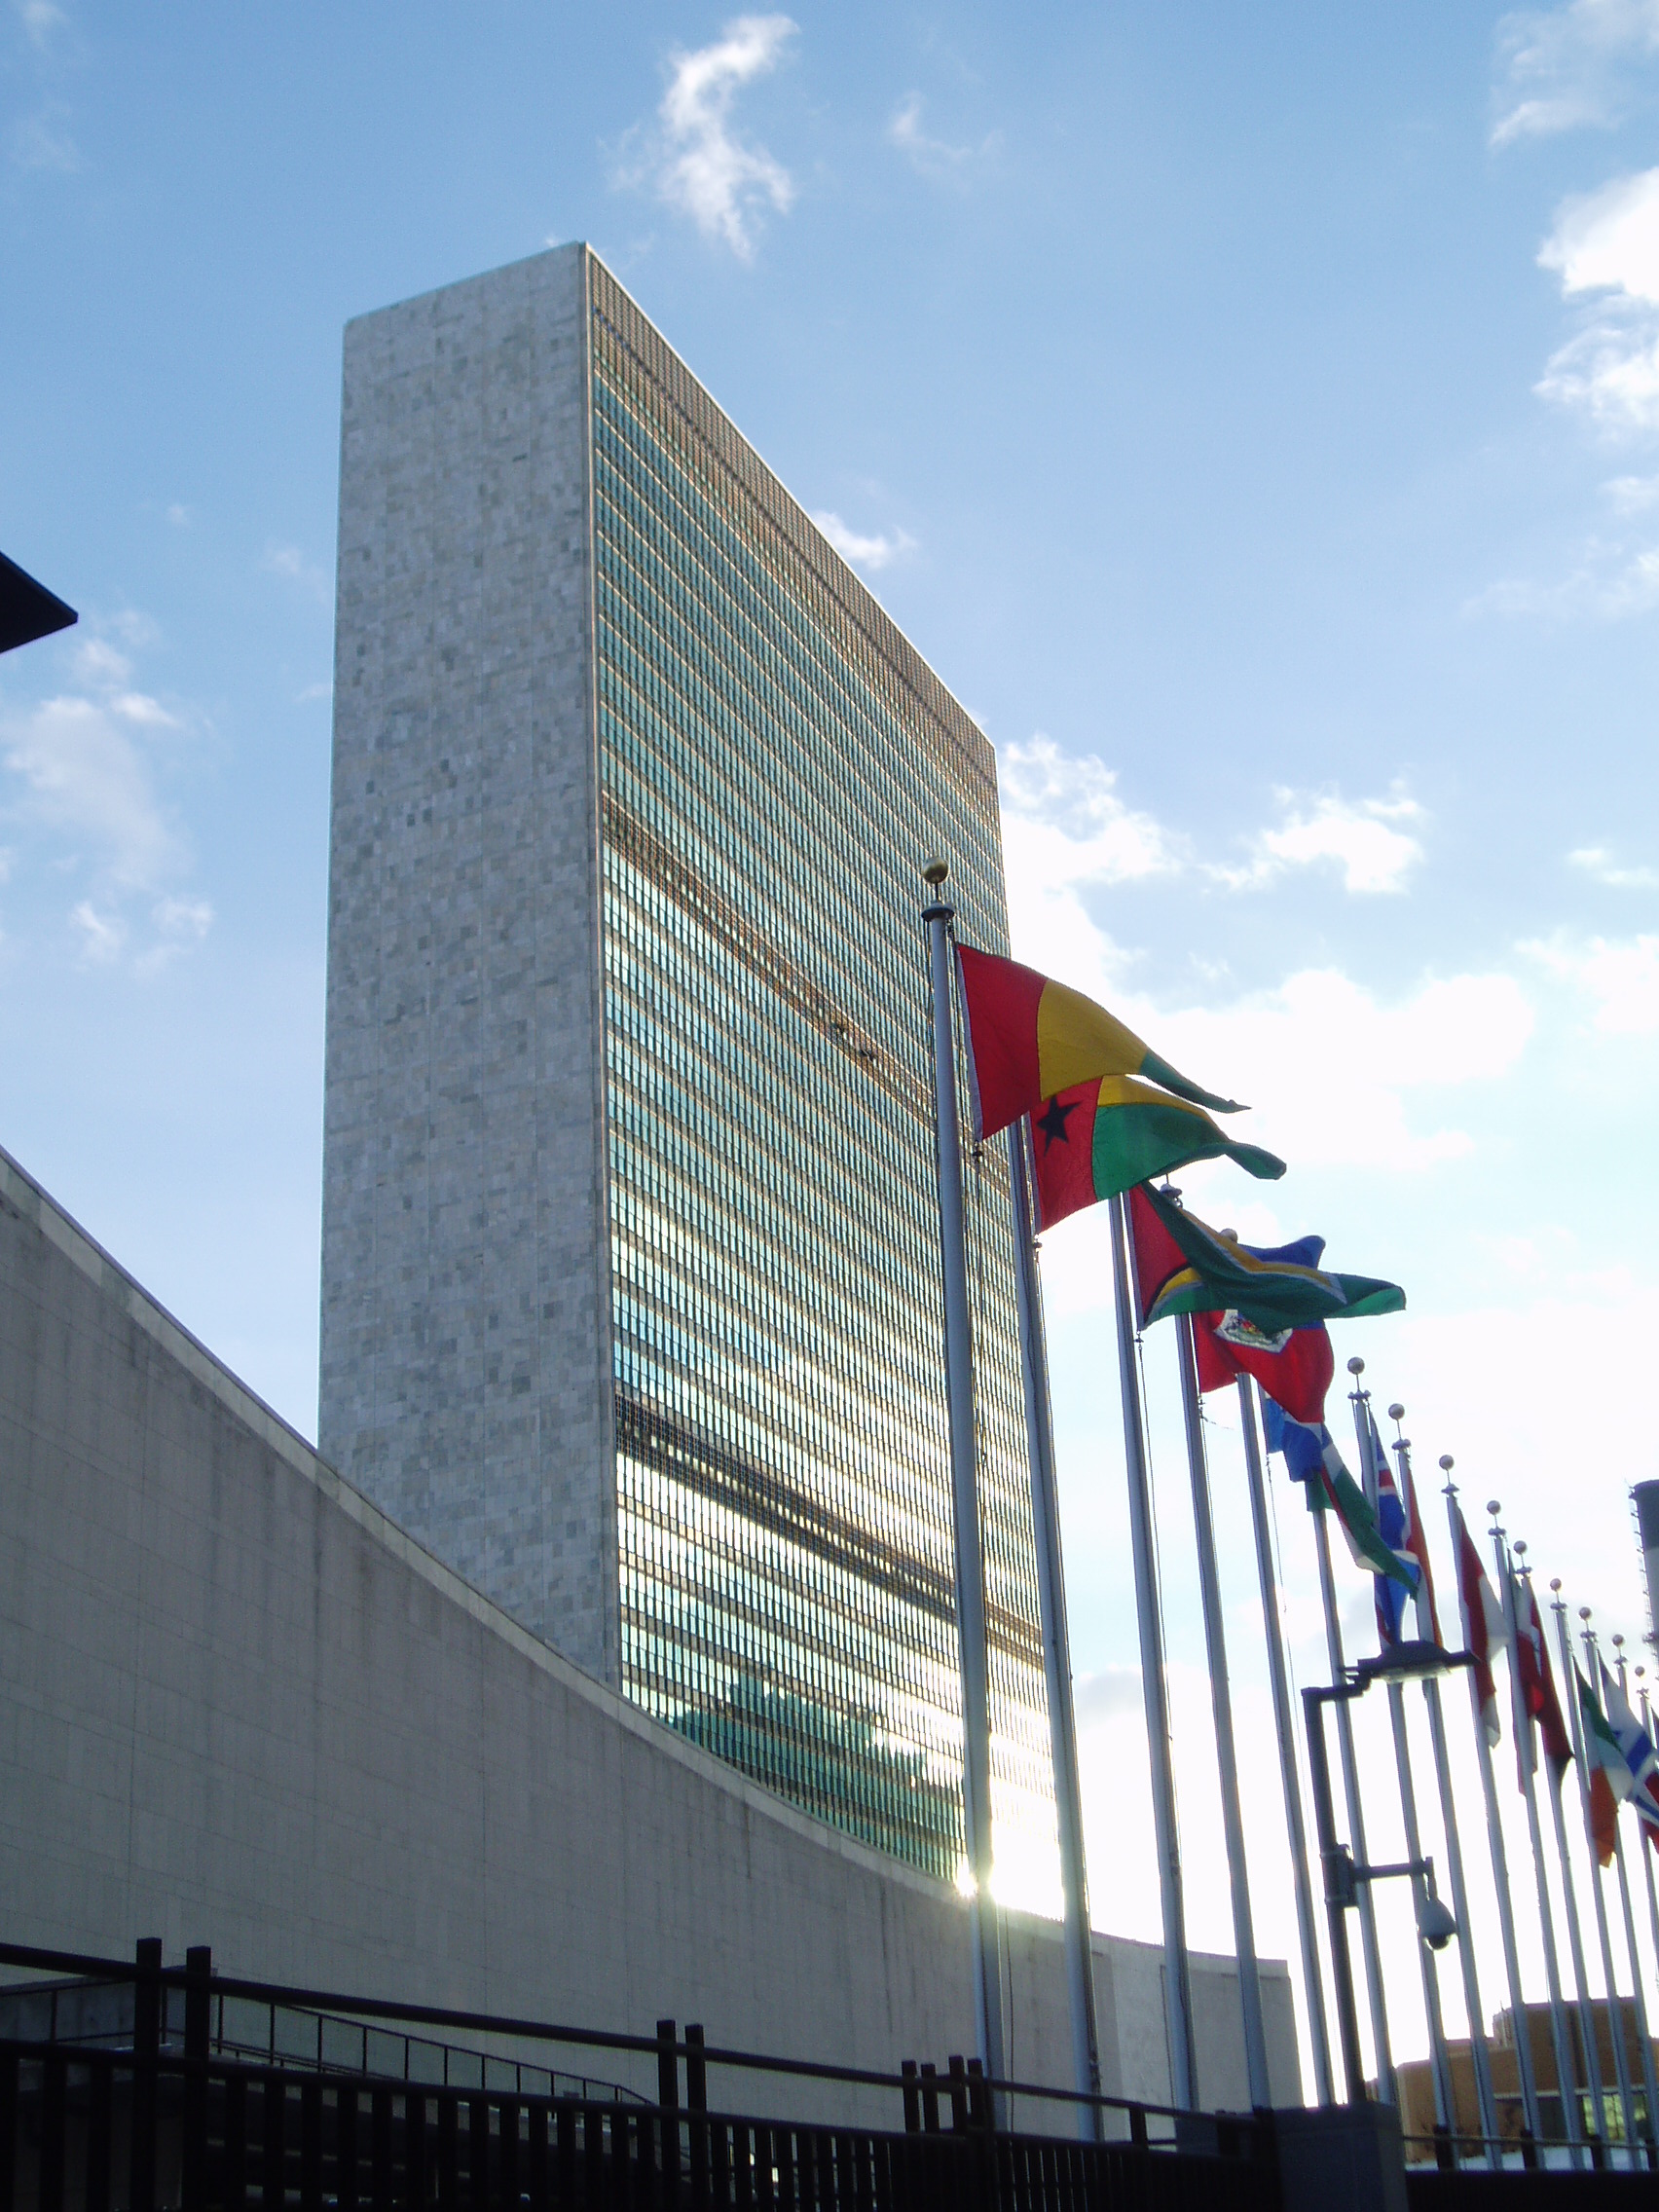 Old School: The United Nations Building, New York, New York, USA (1952). Photo courtesy of Steve Cadman.